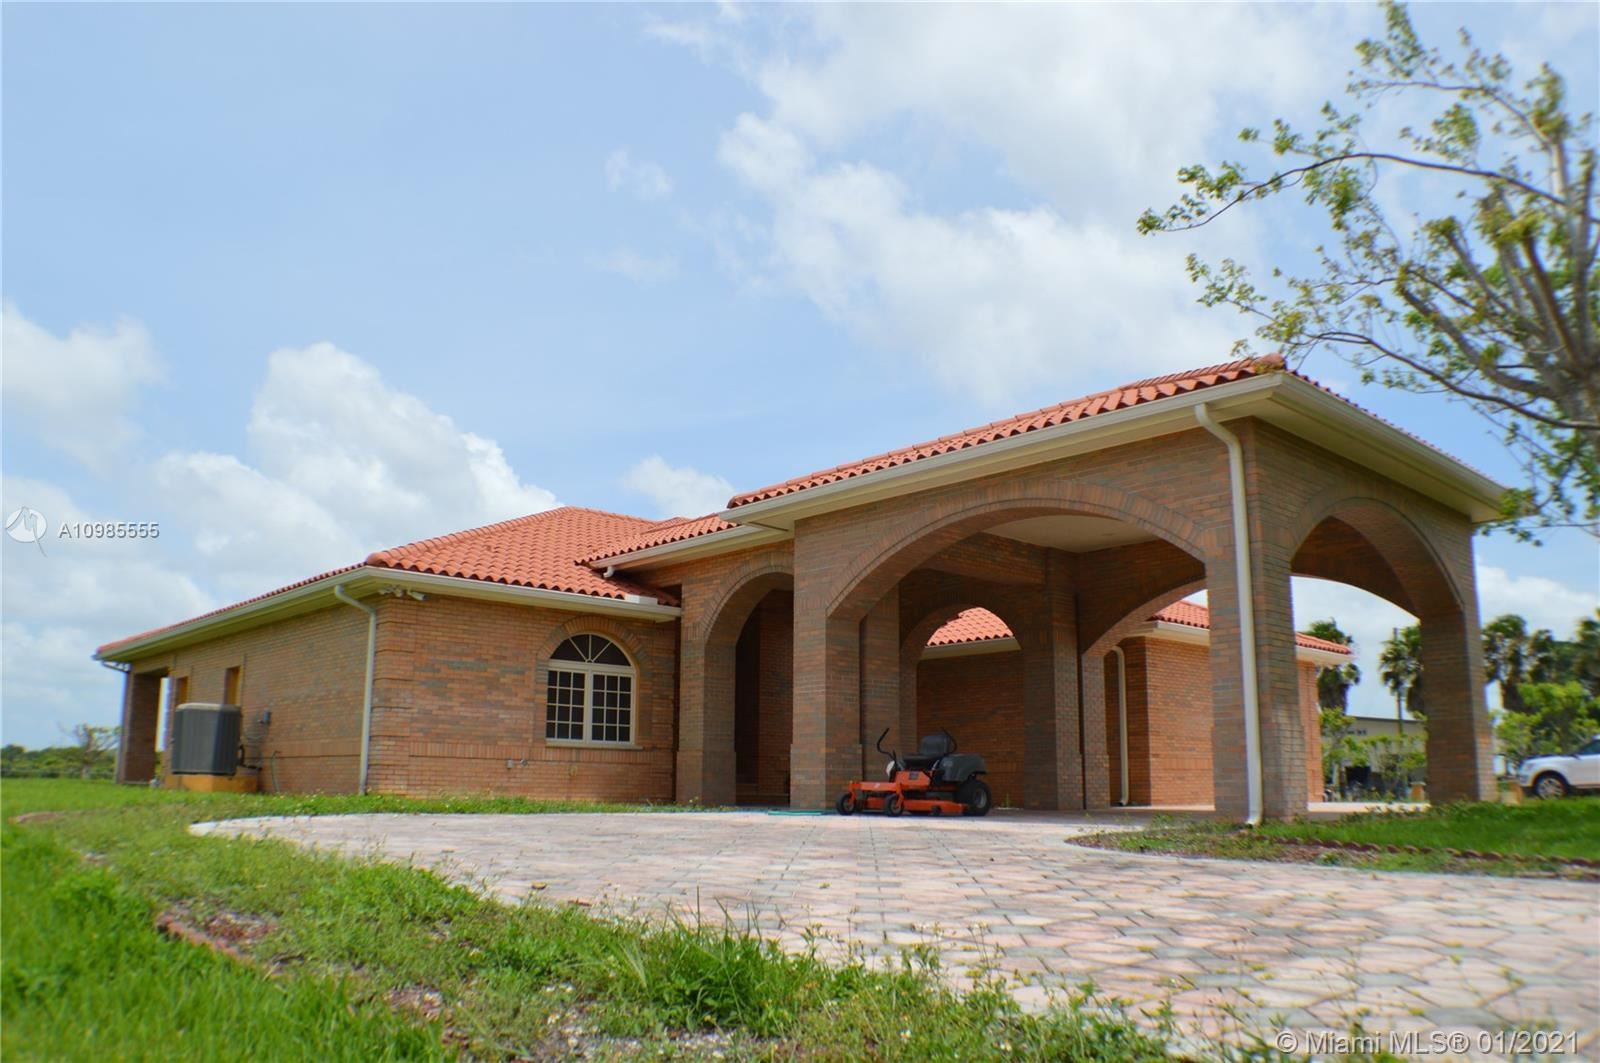 31002 SW 212th Ave, Homestead, FL 33030 - #: A10985555